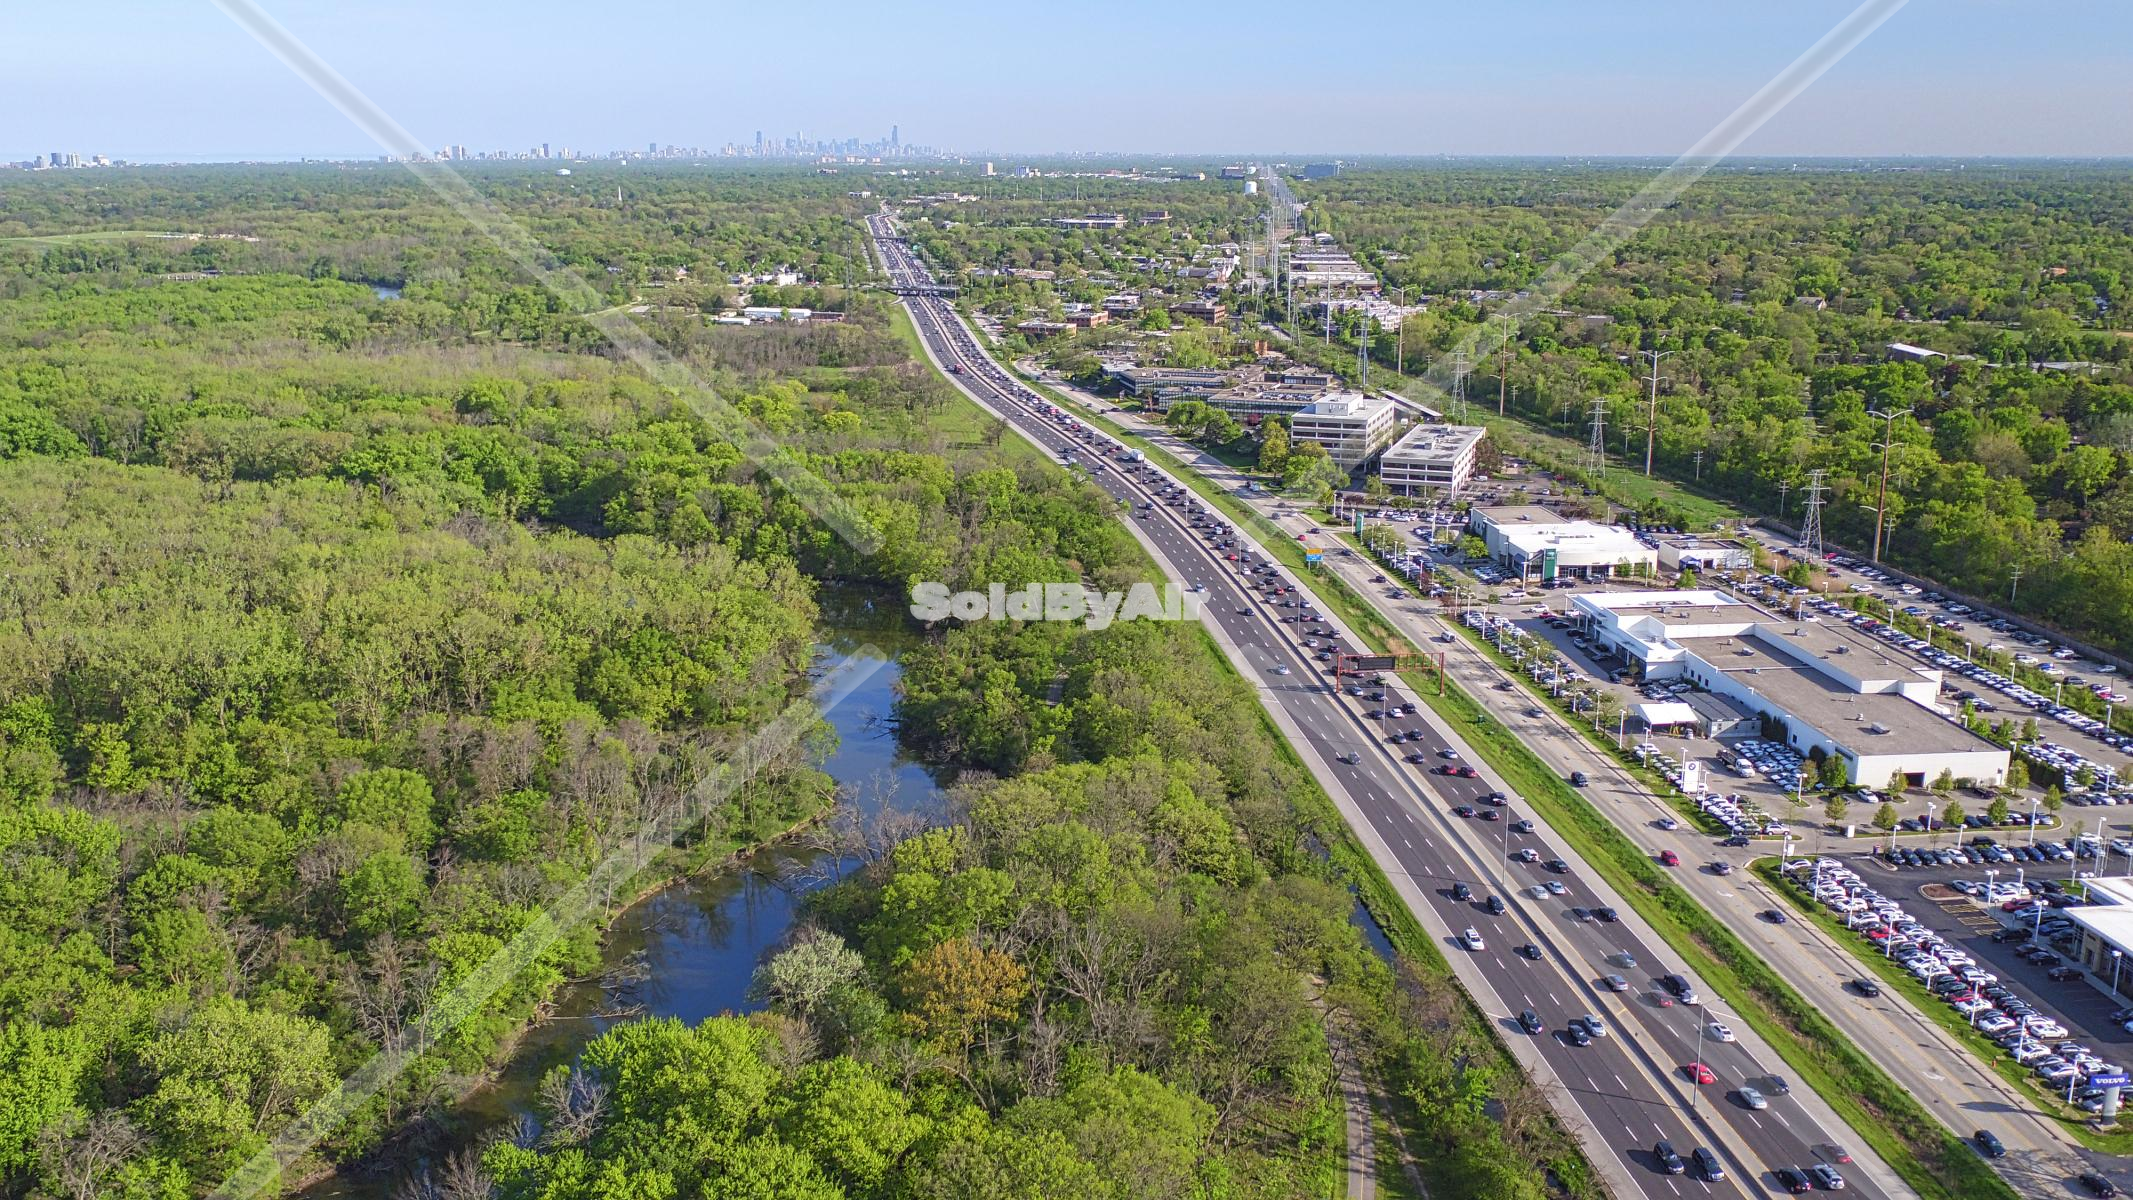 Drone Photo of Edens Expressway with Chicago skyline in distance in Northfield Illinois